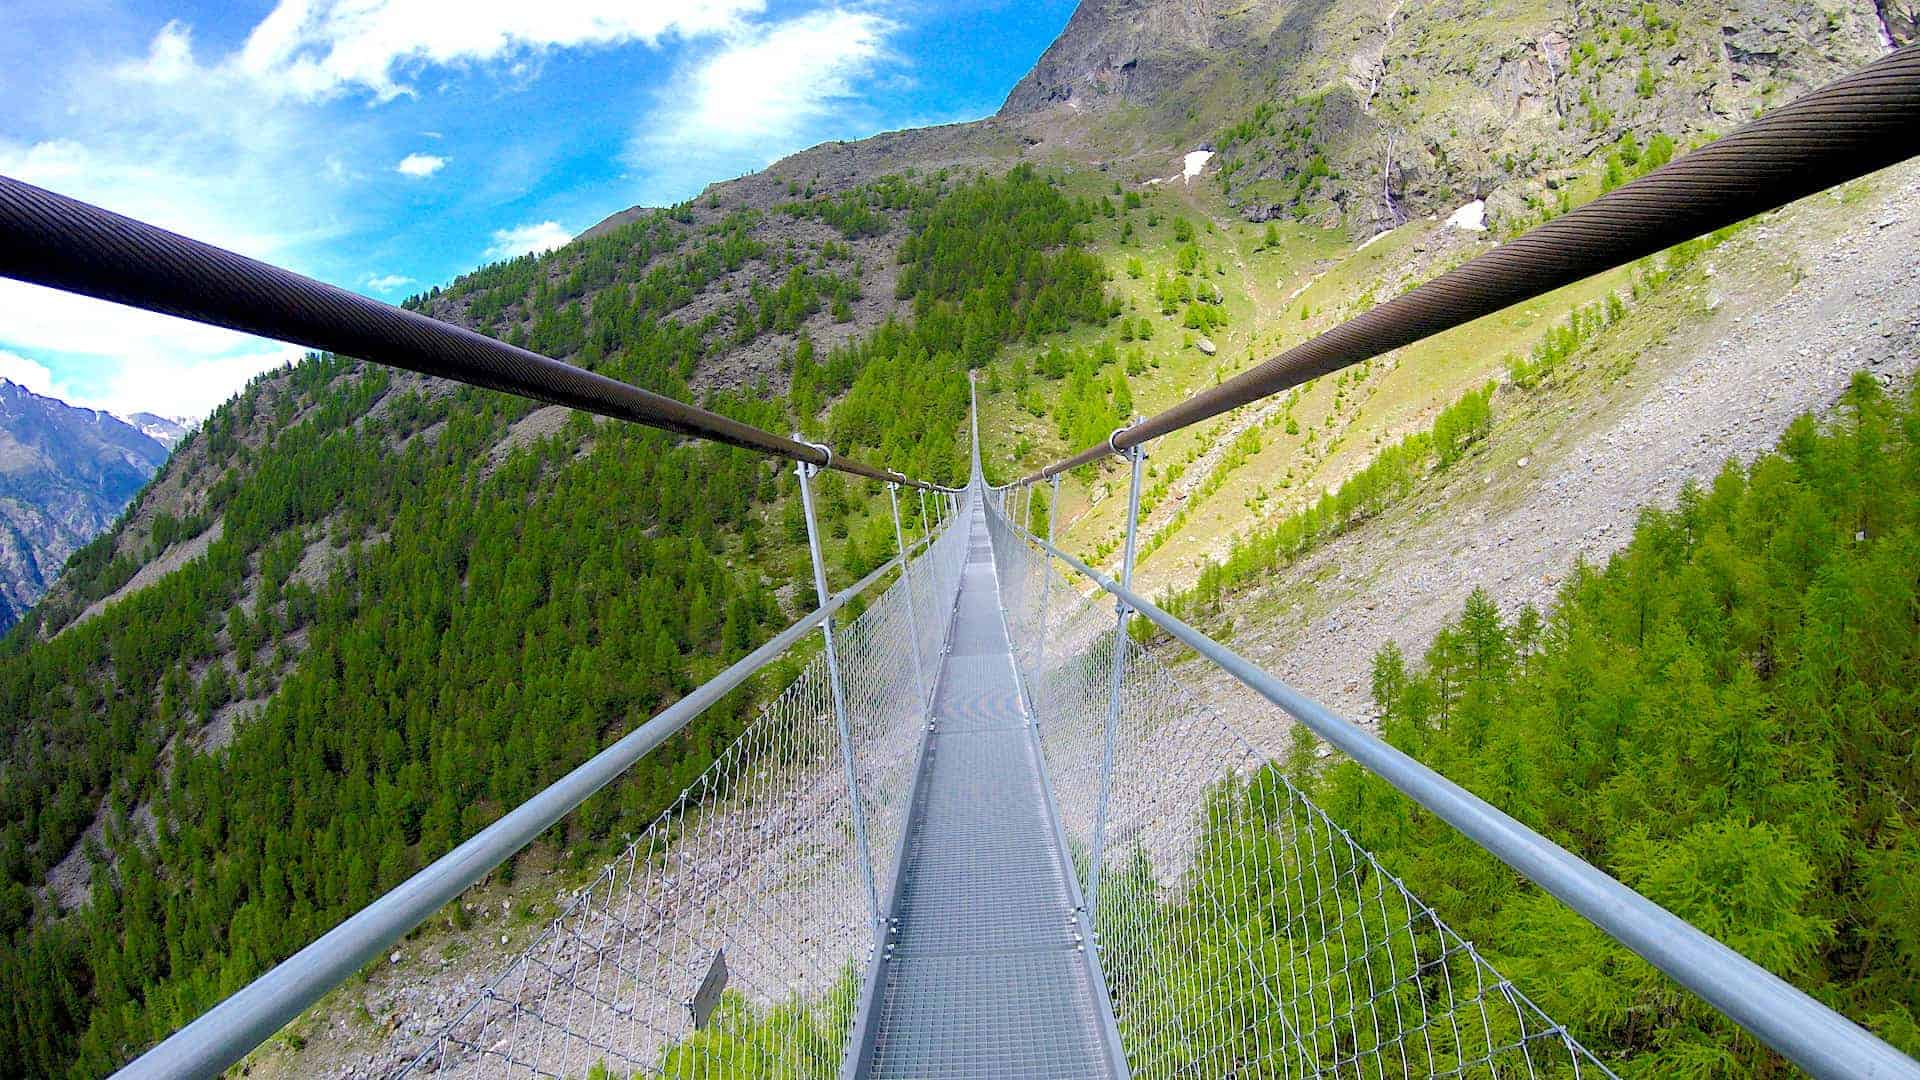 Charles Kuonen Suspension Bridge Rocks